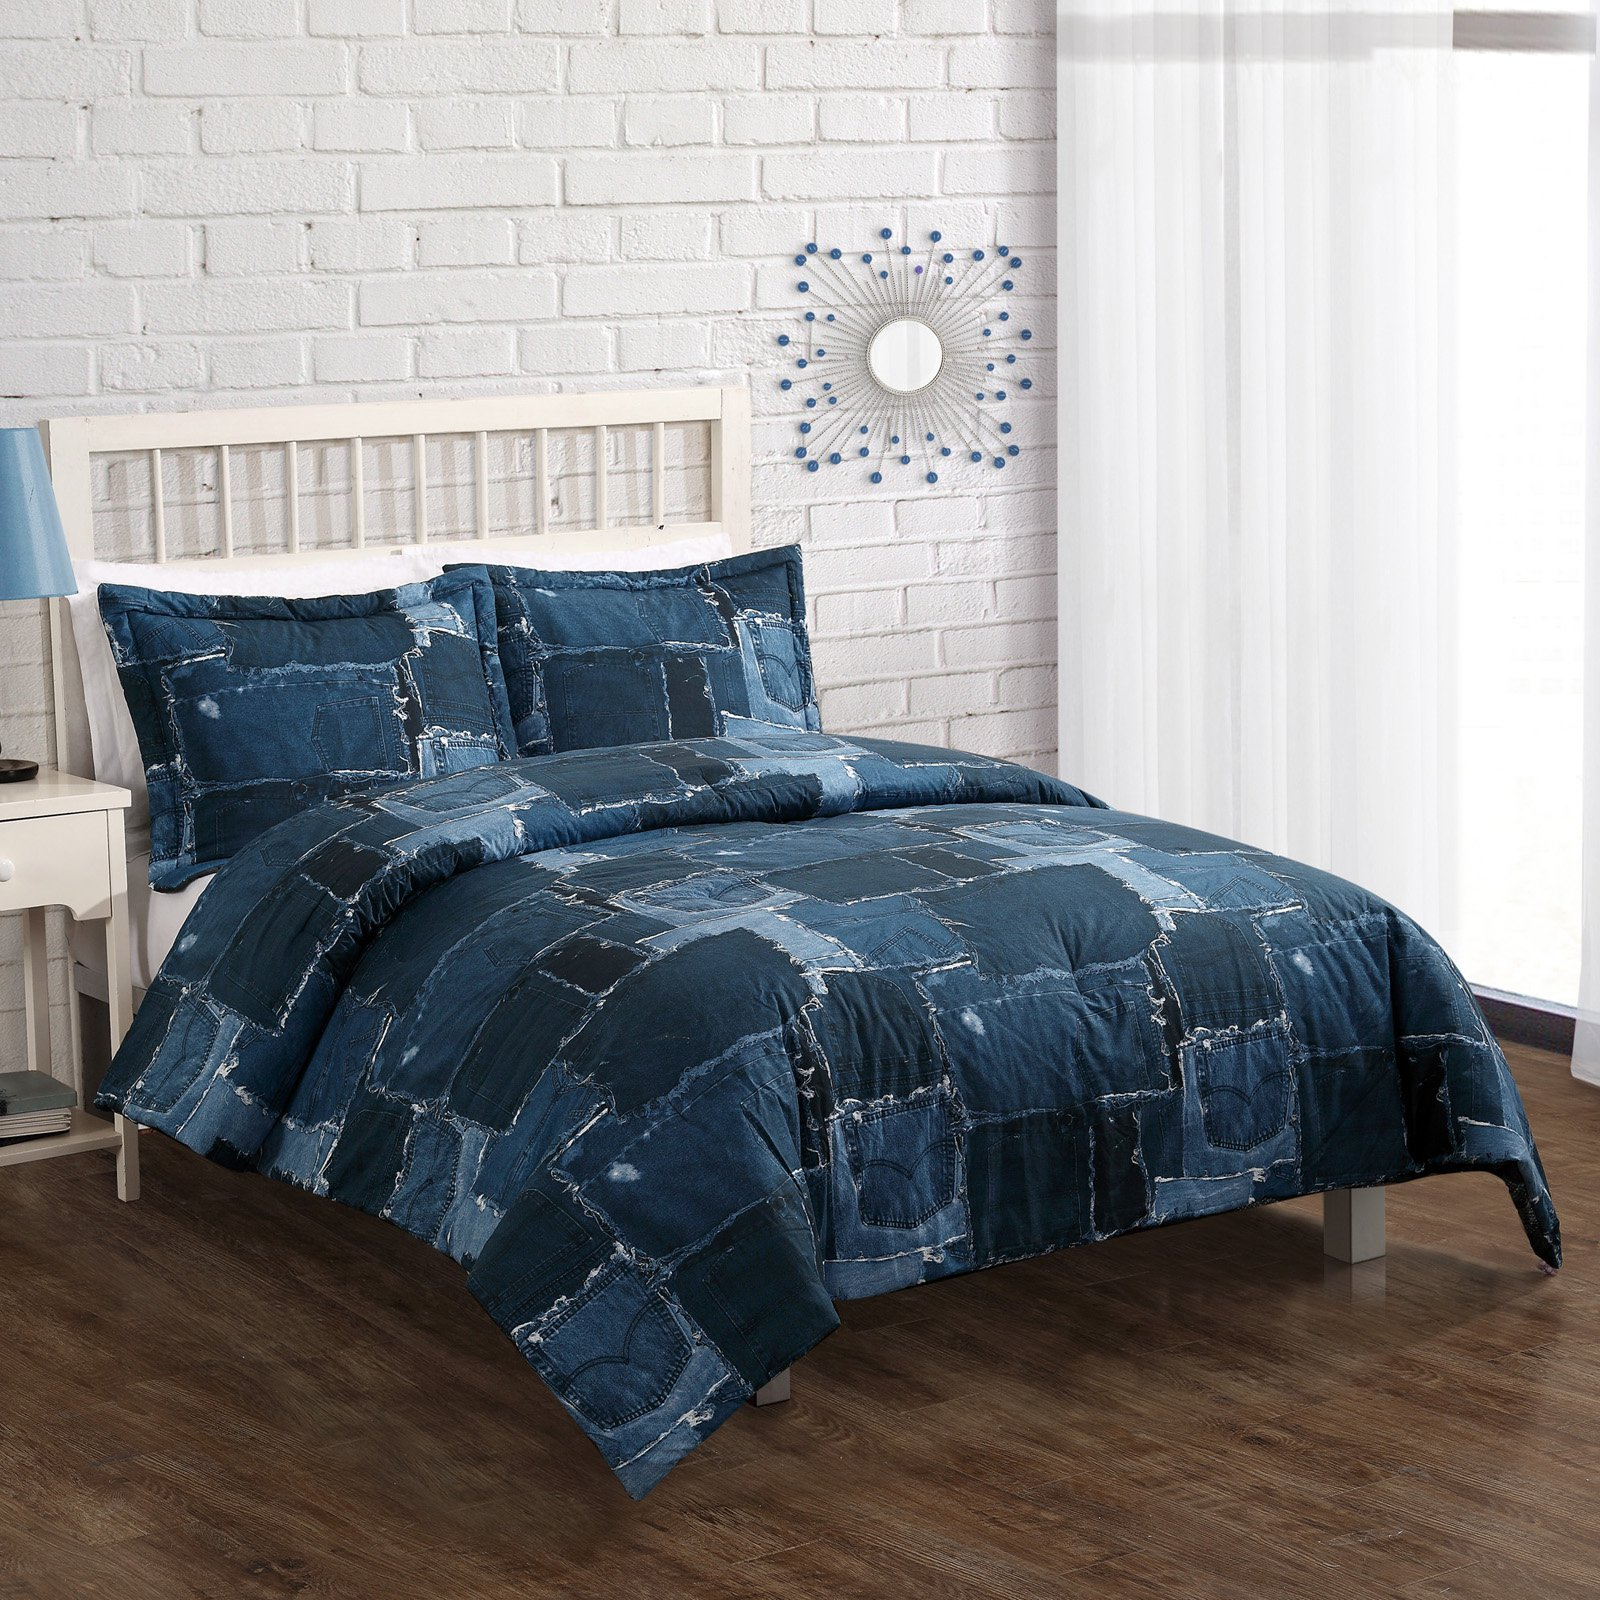 denim comforter comforters bedding queen designs sets